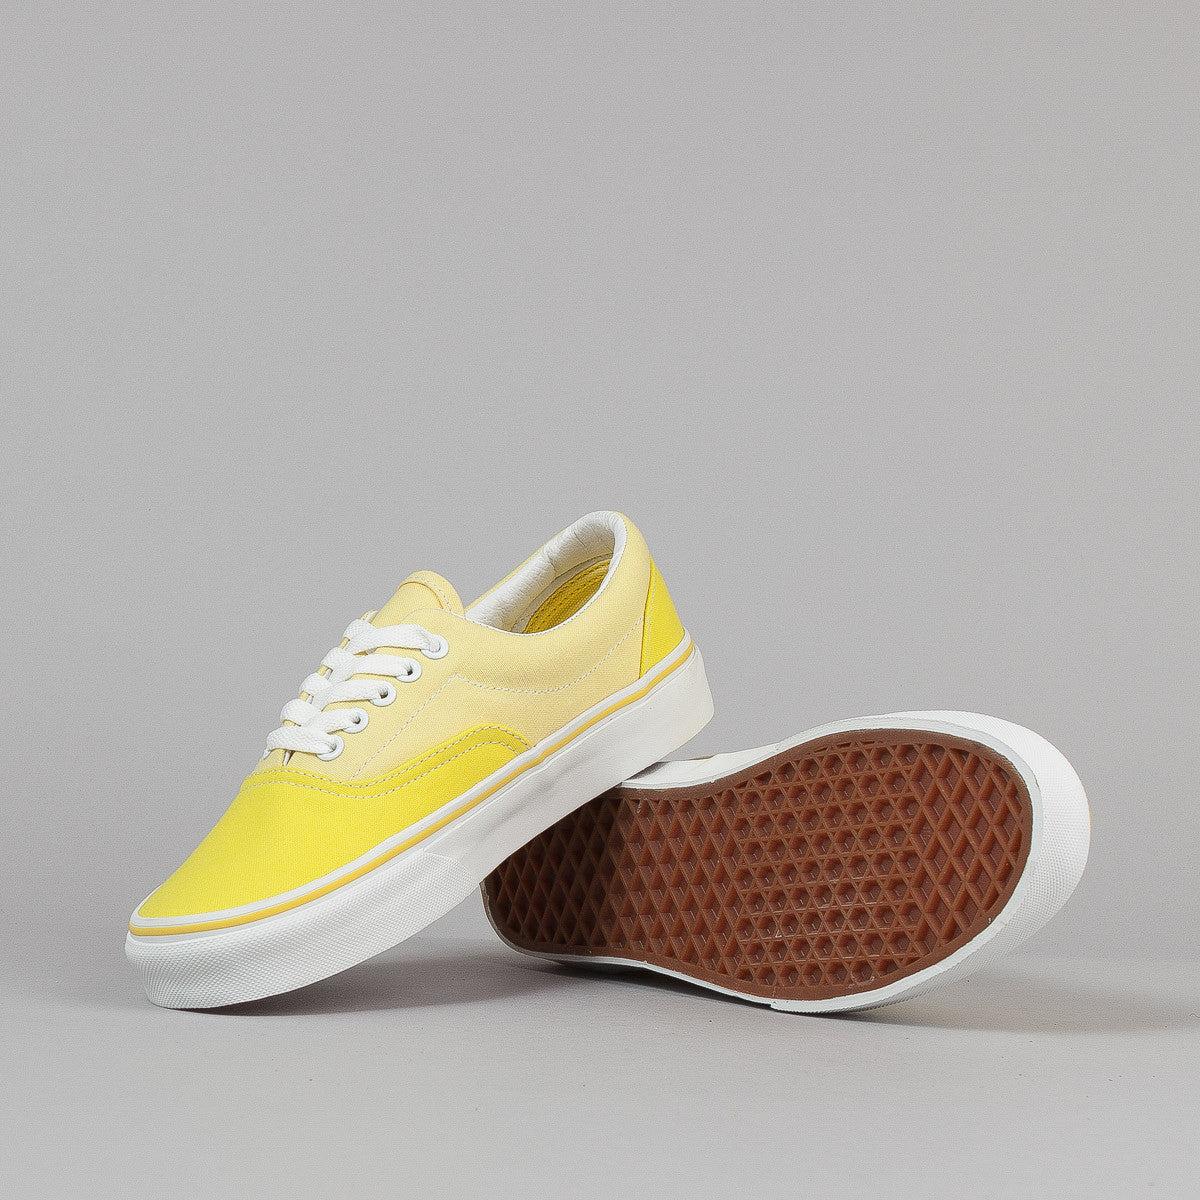 Vans Era Shoes - Limelight / Buttercup